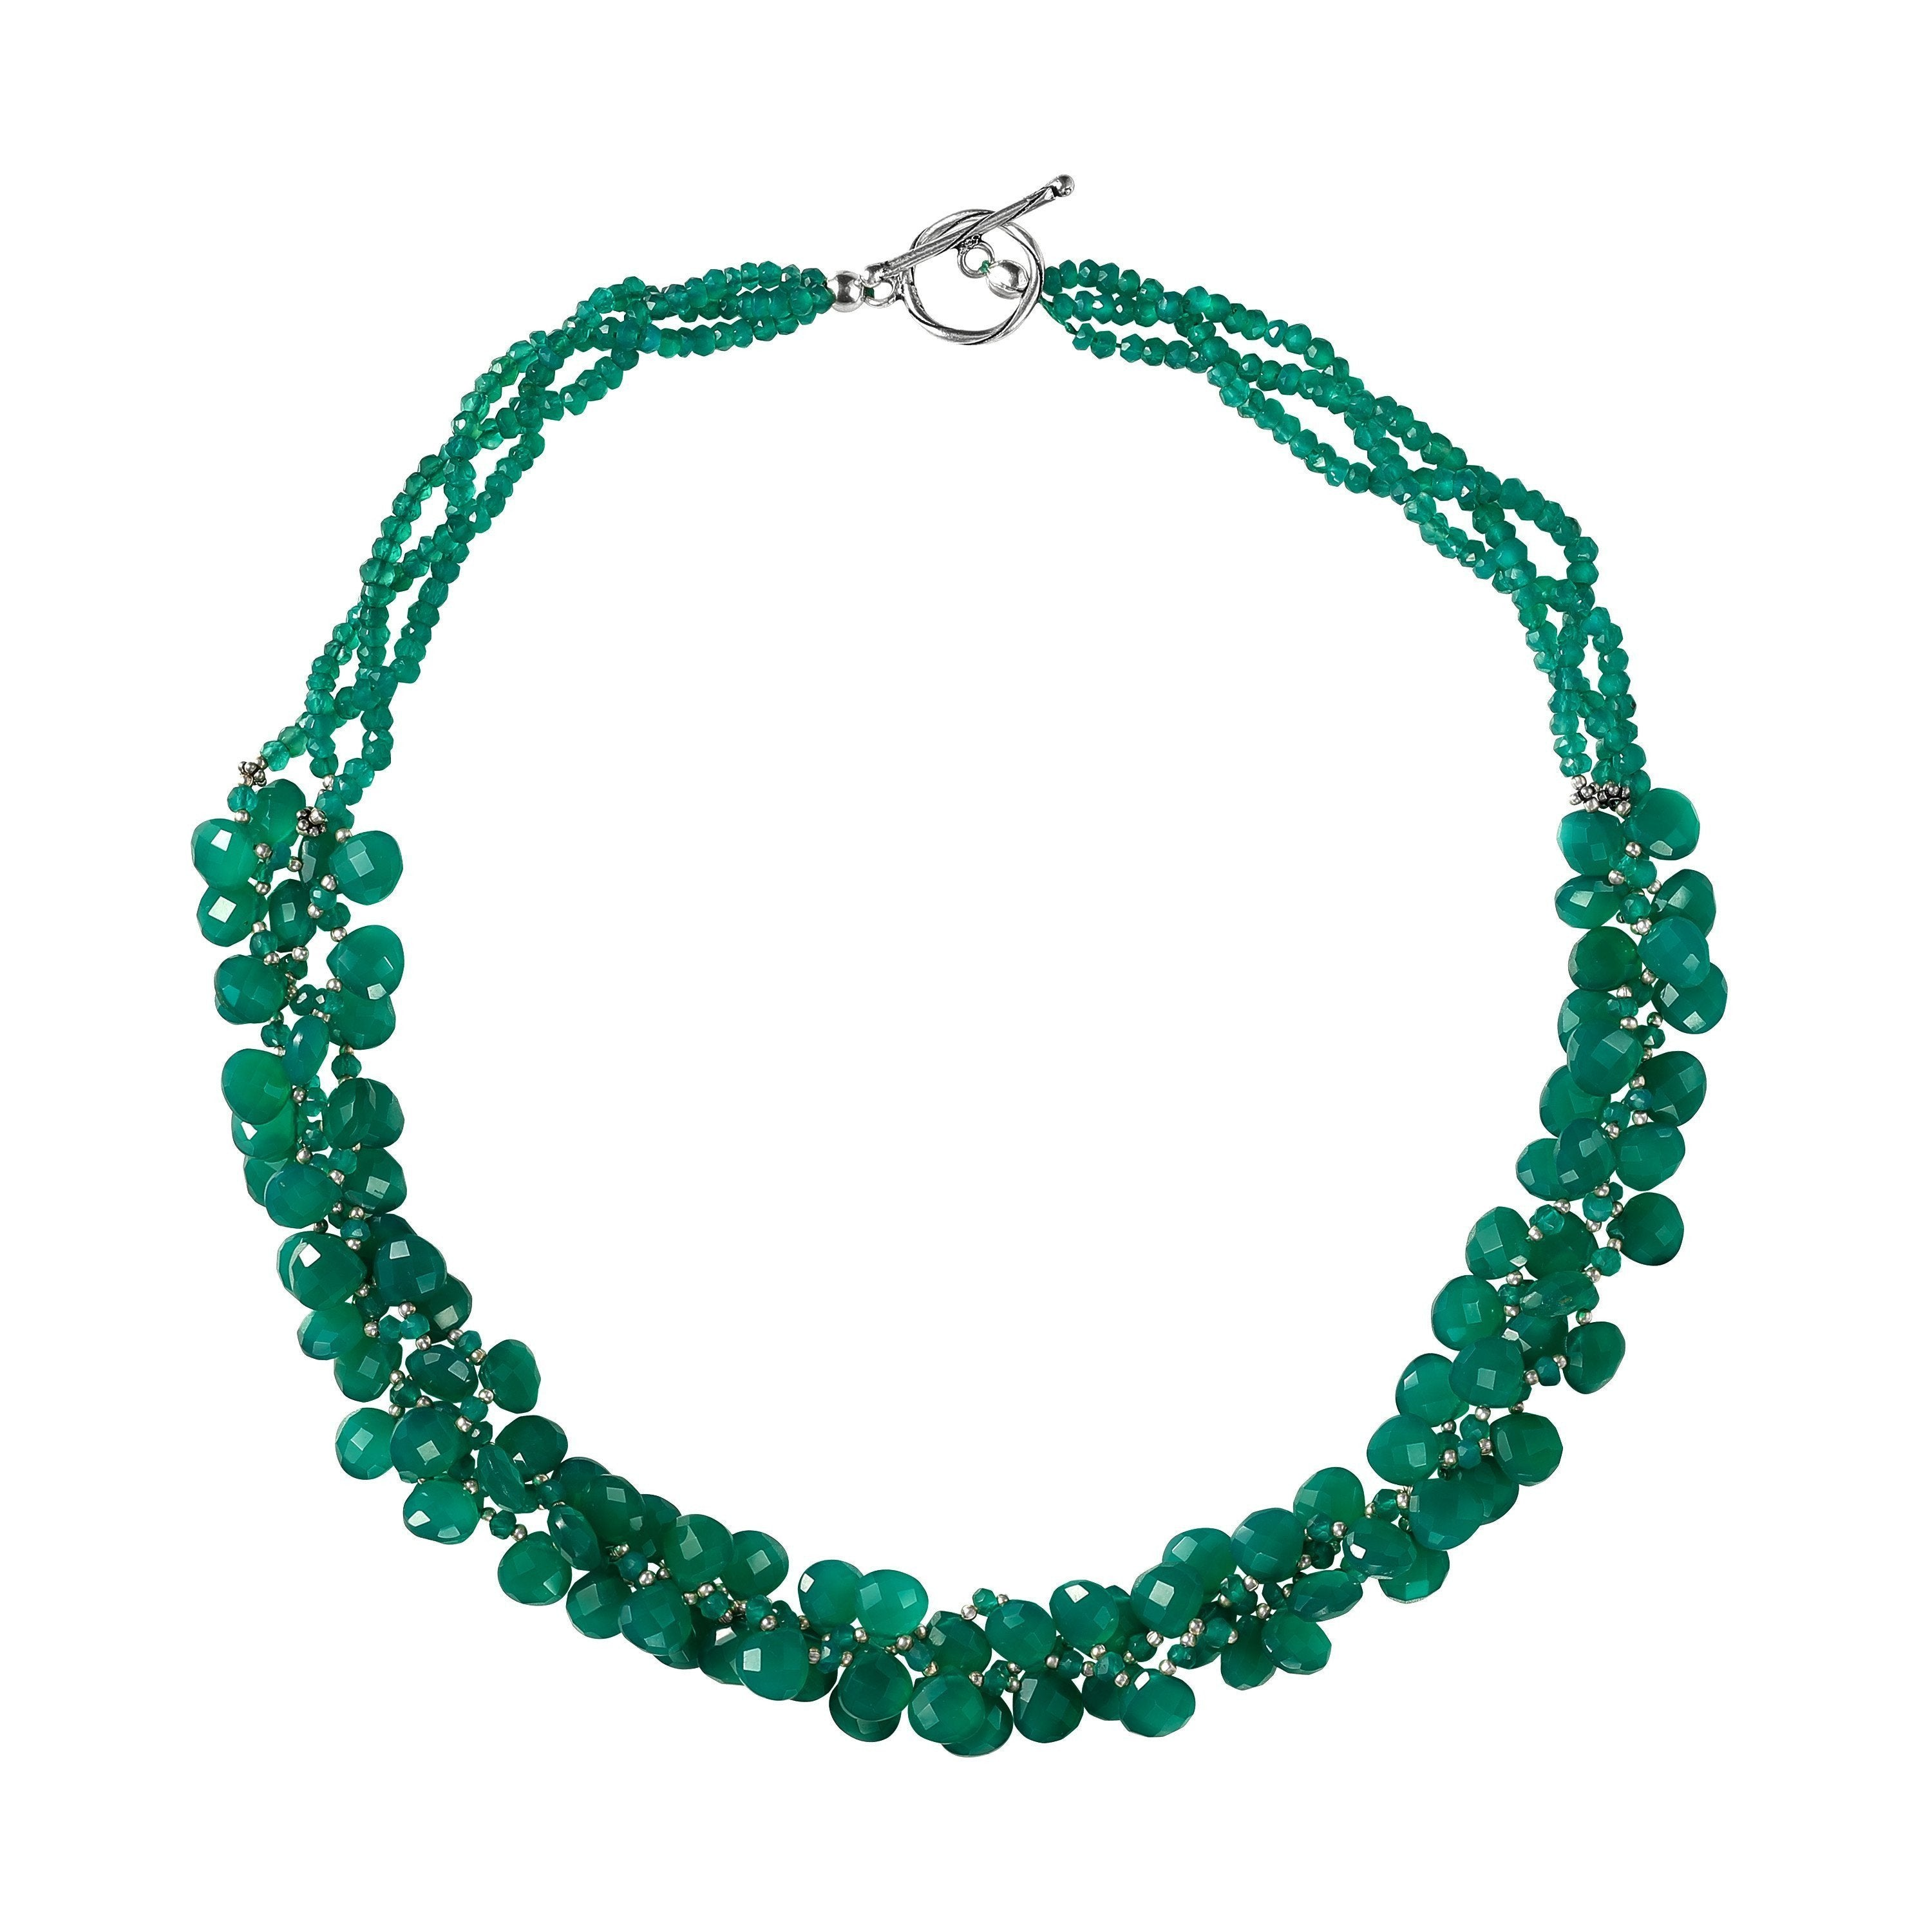 onyx emerald ashworth jacqueline birthstone products green jacquelineashworth necklace turquoise may december